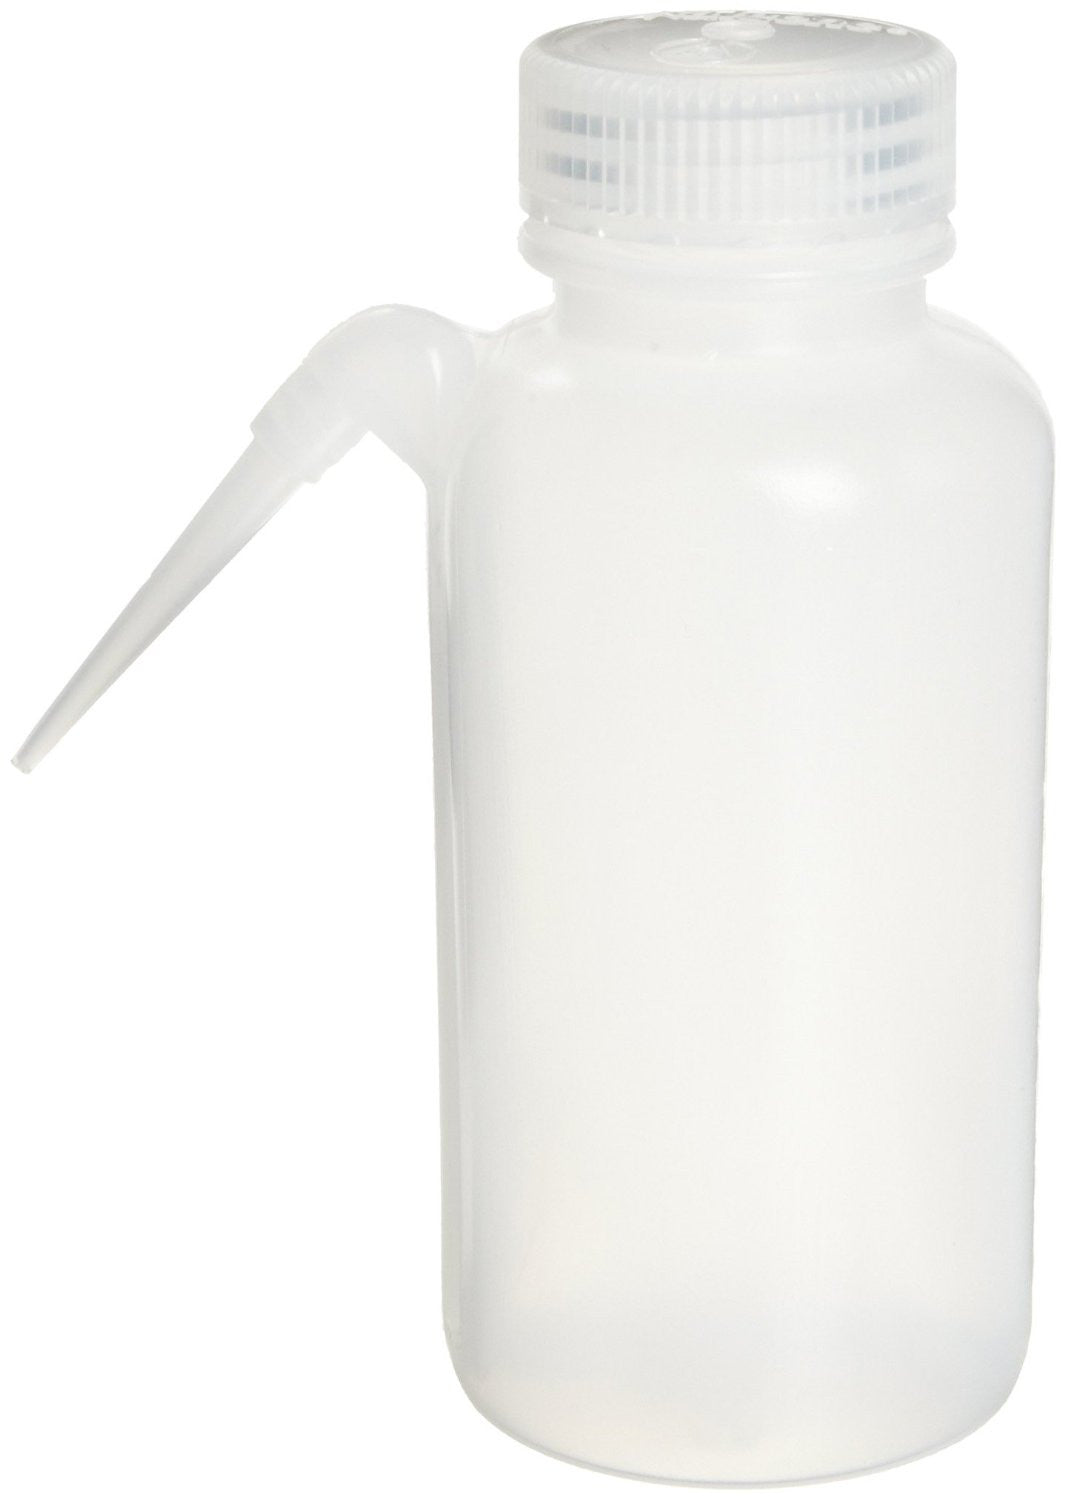 Nalgene Wide-Mouth Unitary Wash Bottles ~ 250mL - The Science Shop